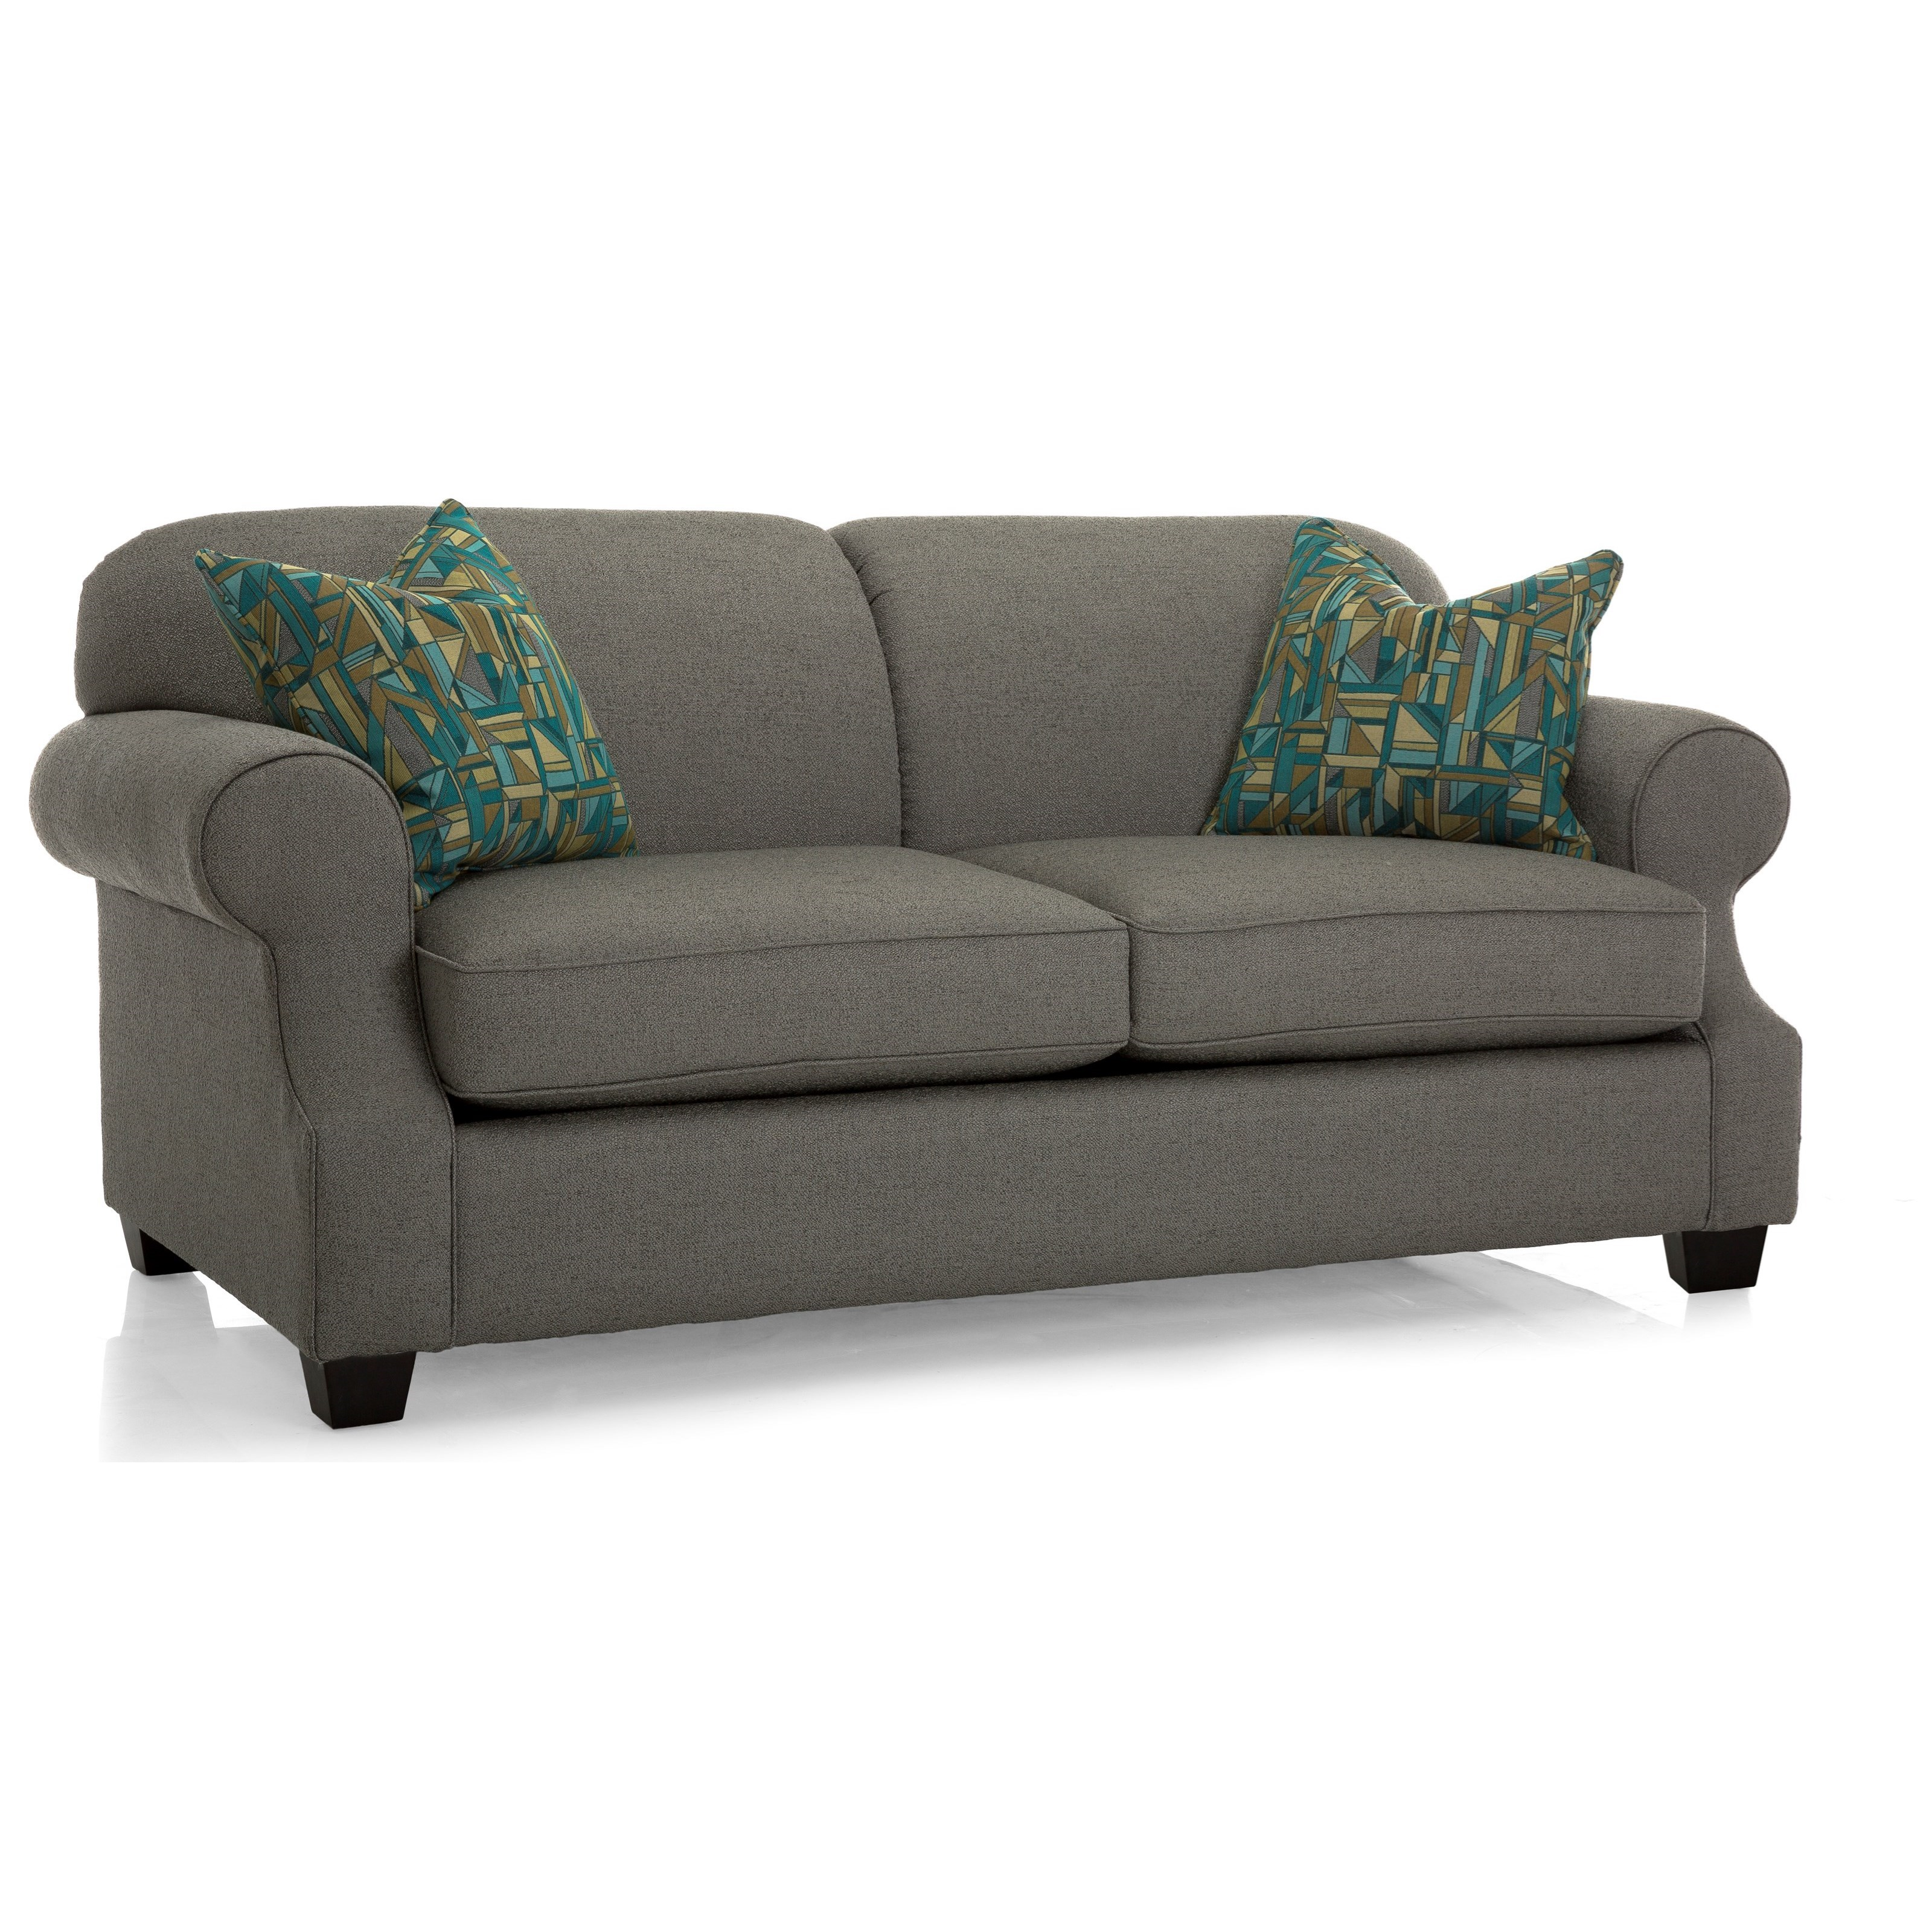 2000 Double Bed Sleeper Sofa by Decor-Rest at Rooms for Less